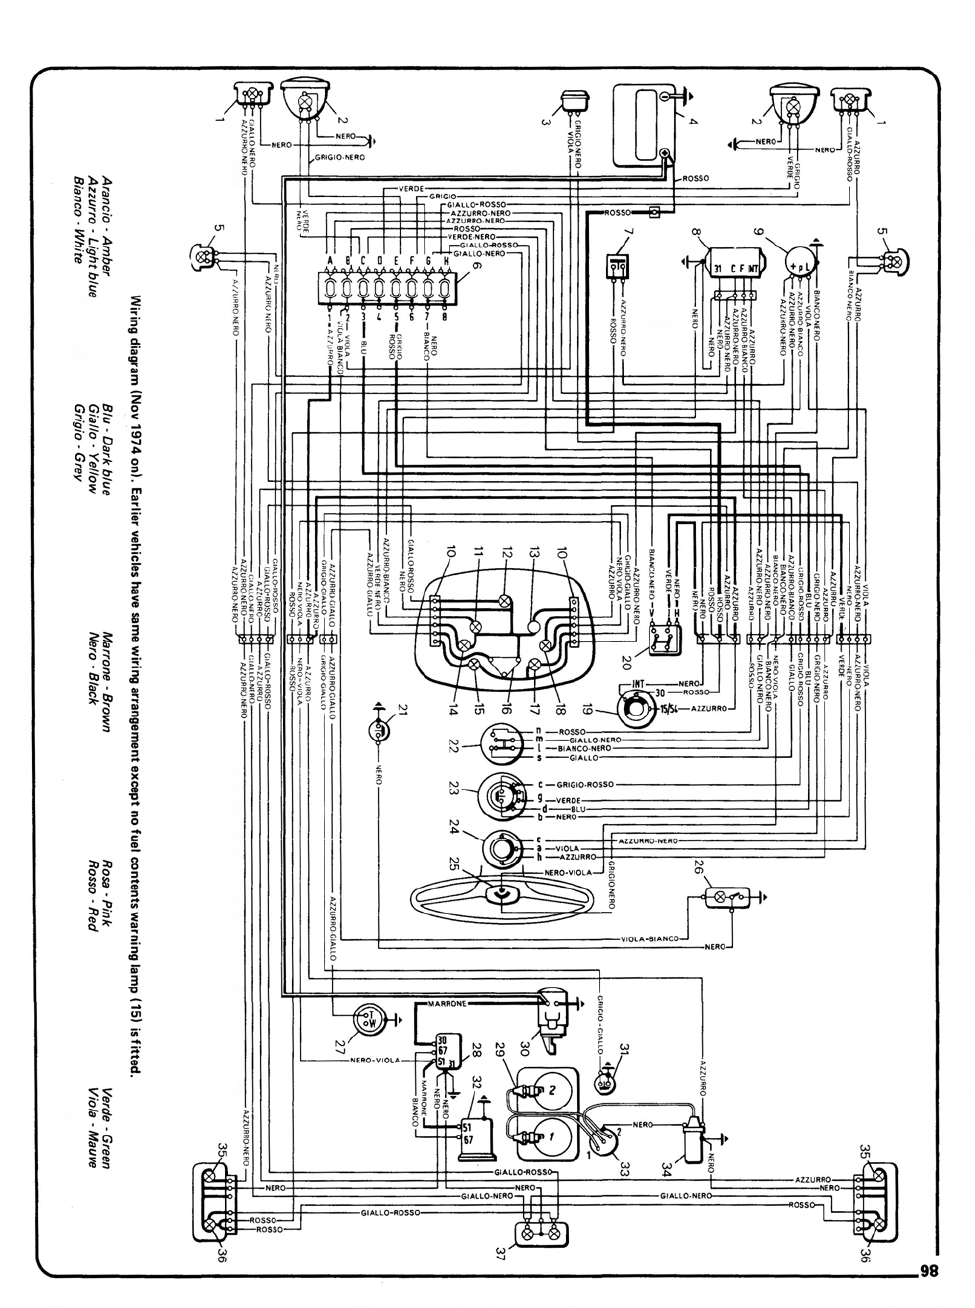 fiat 126 bis wiring diagram easy to read wiring diagrams. Black Bedroom Furniture Sets. Home Design Ideas